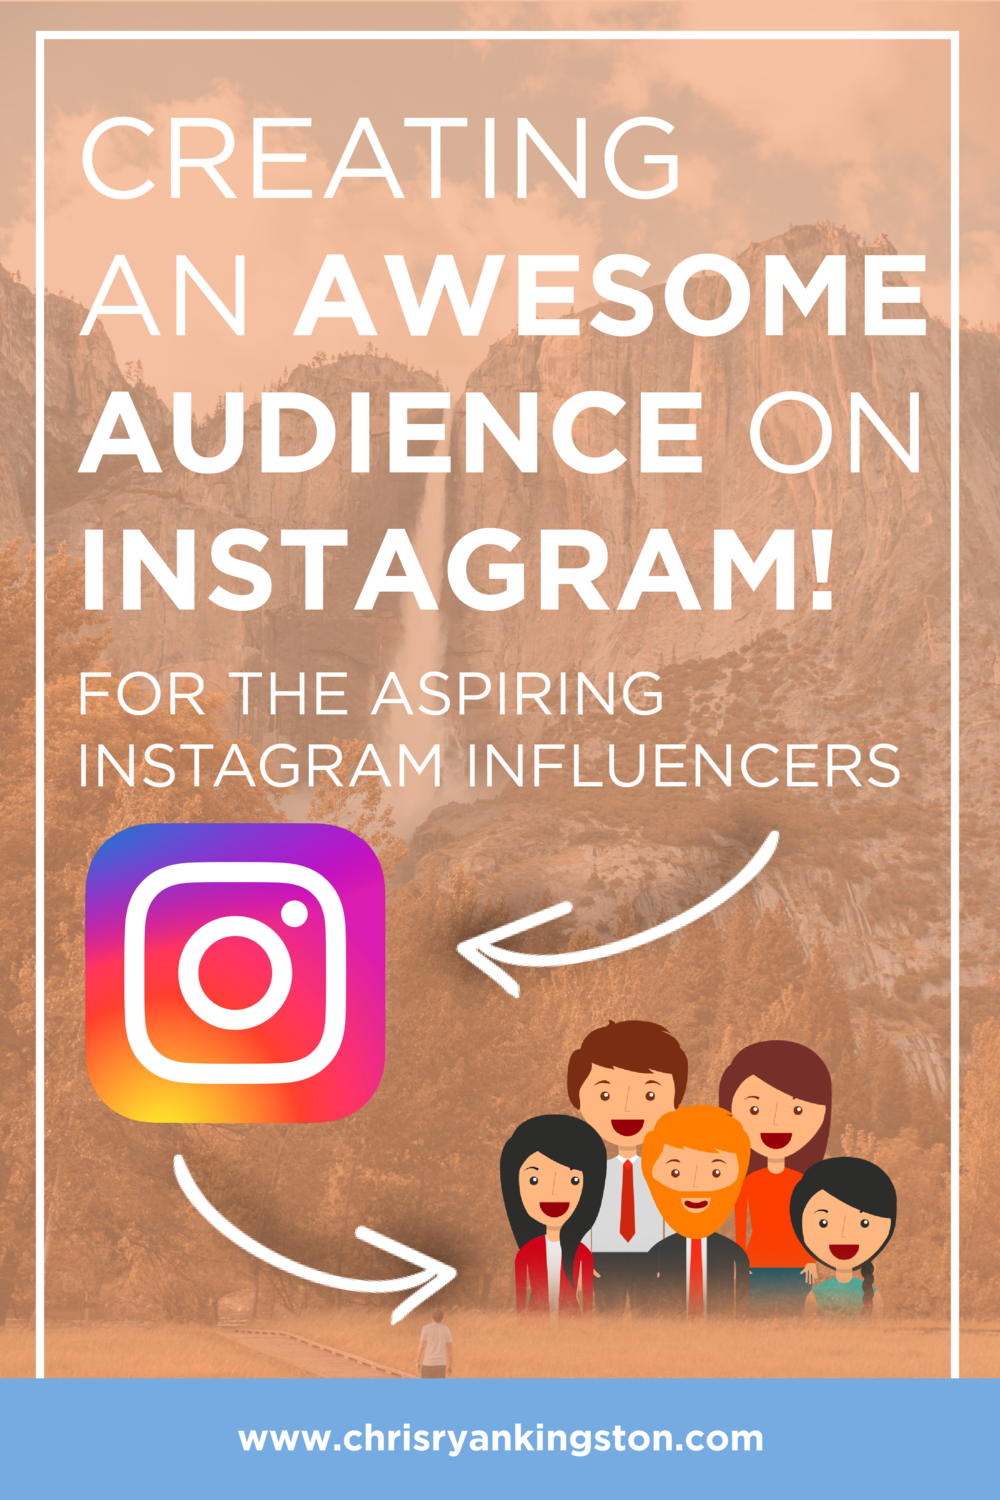 4 Ways To Create A More Engaged Instagram Audience | chrisryankingston.com